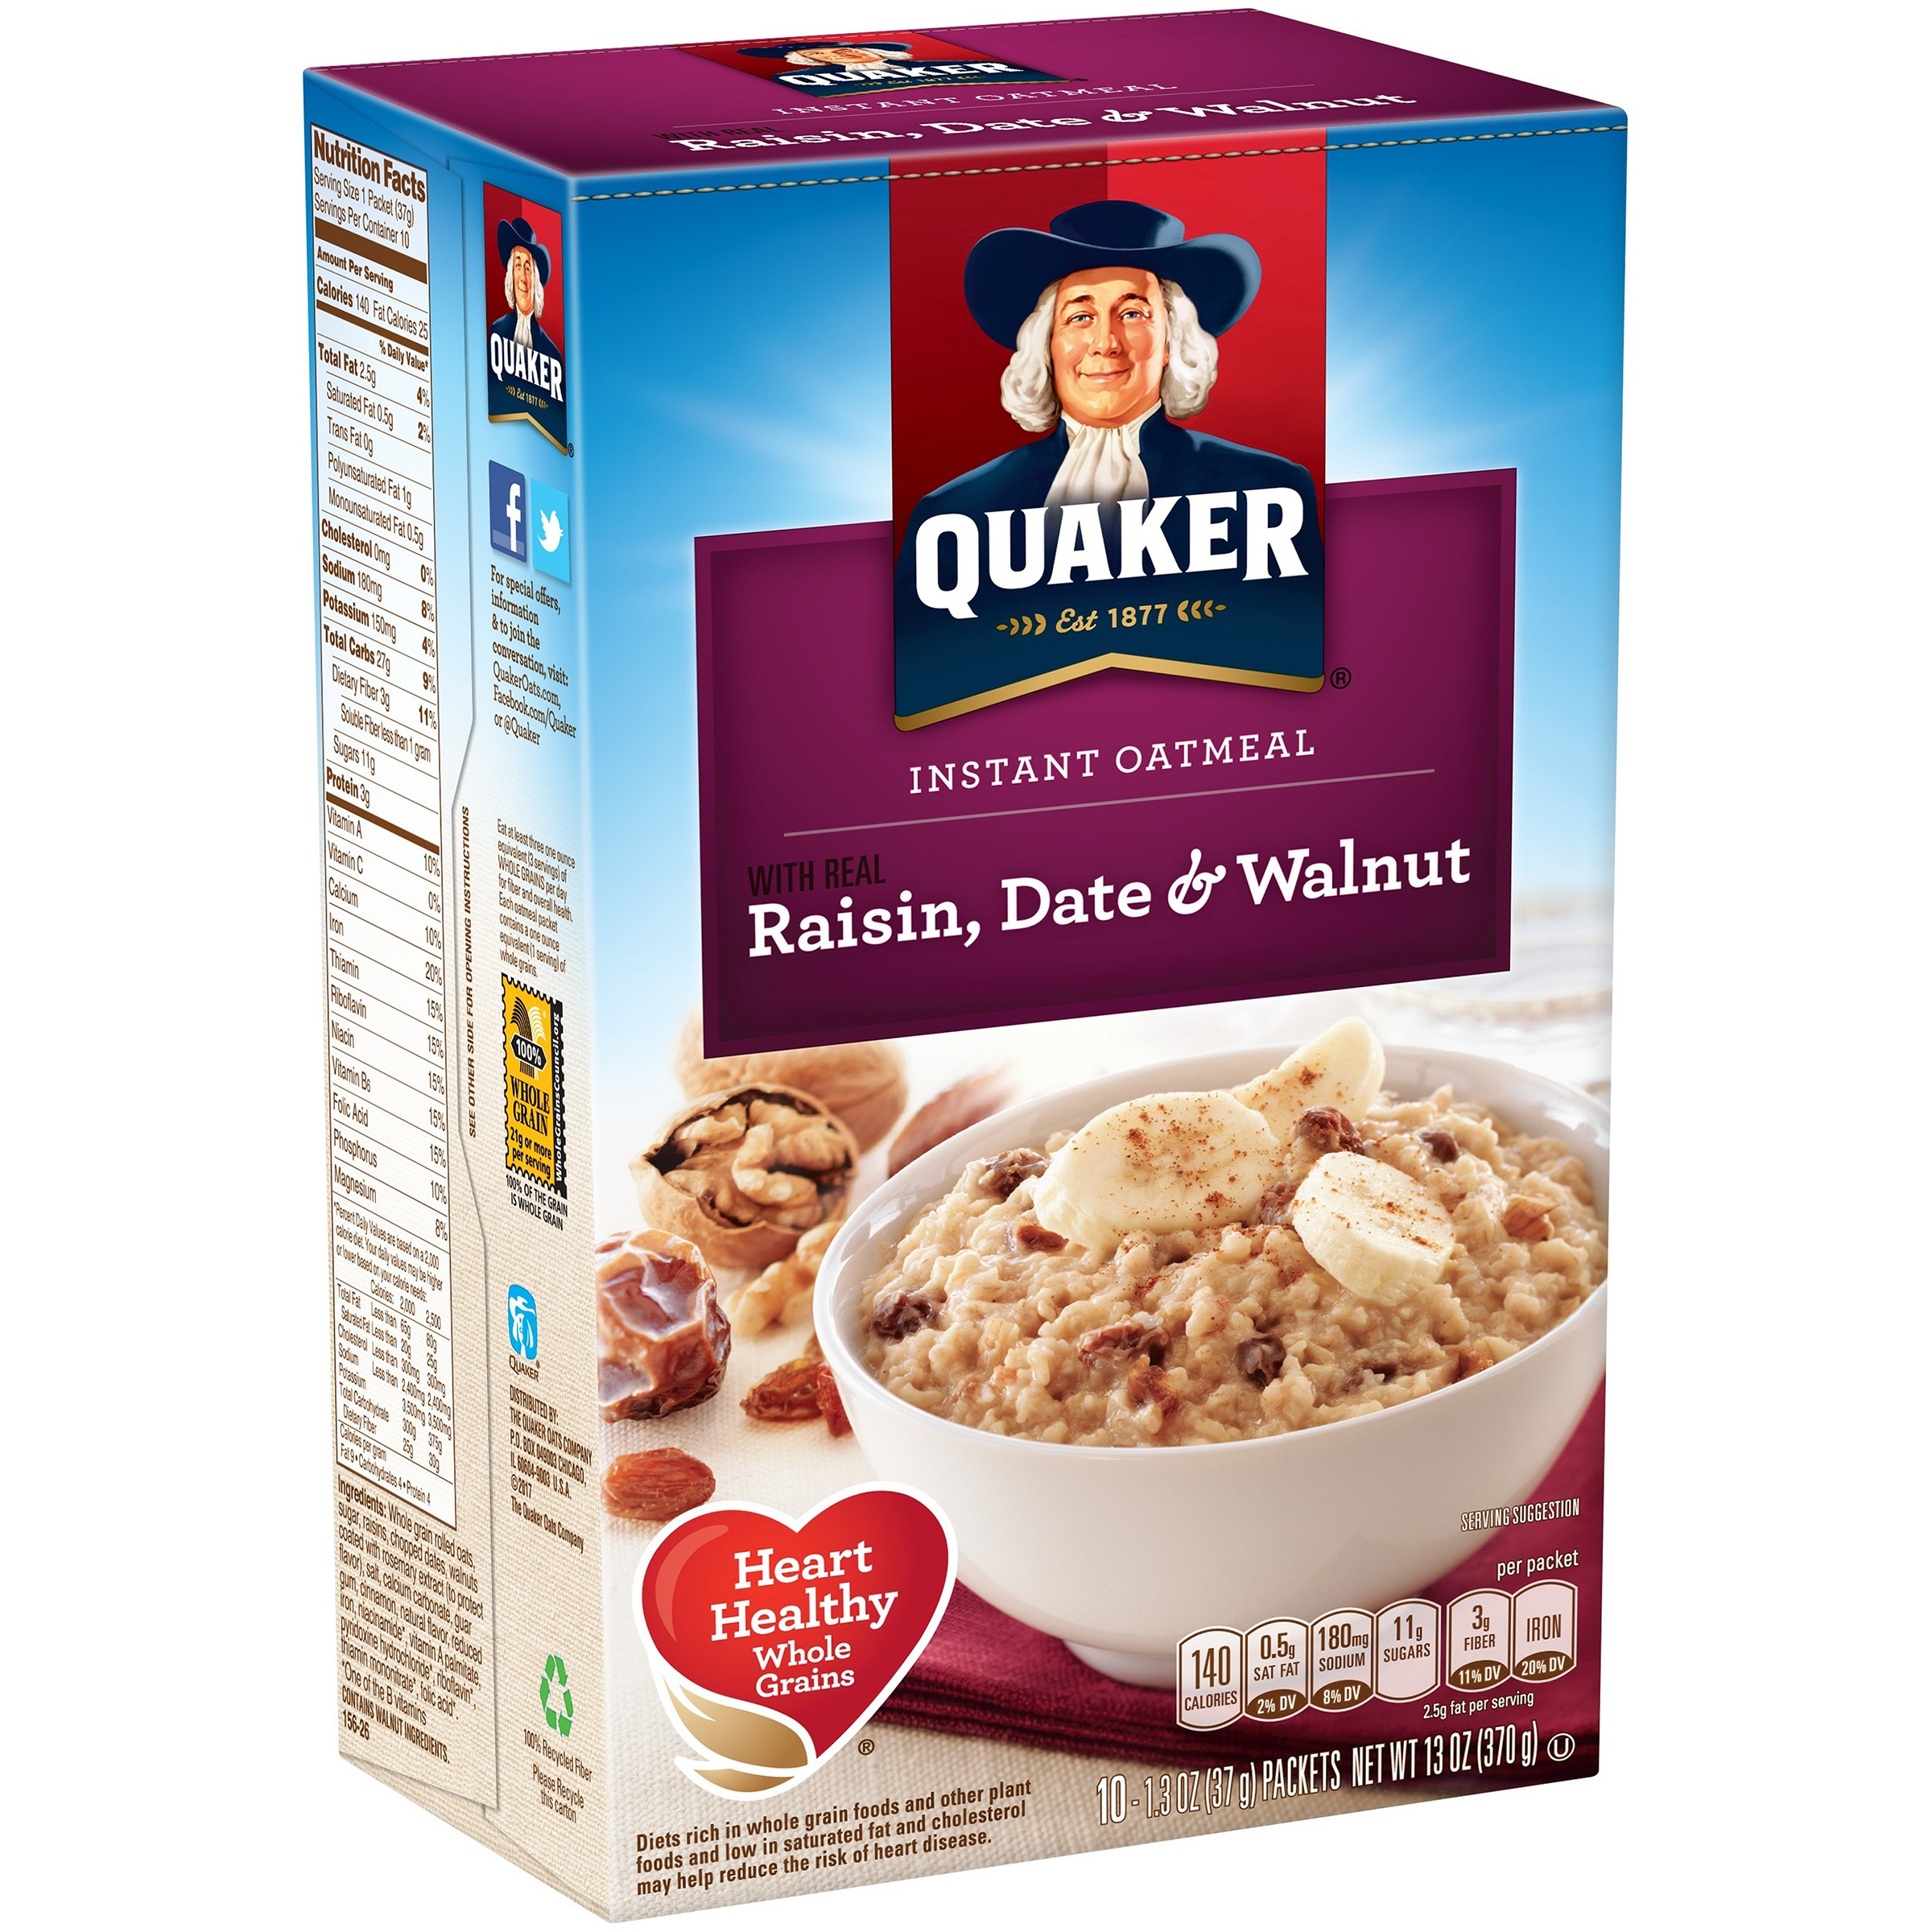 (4 Pack) Quaker Raisin Date & Walnut Instant Oatmeal, 10 Count, 1.3 oz Packets